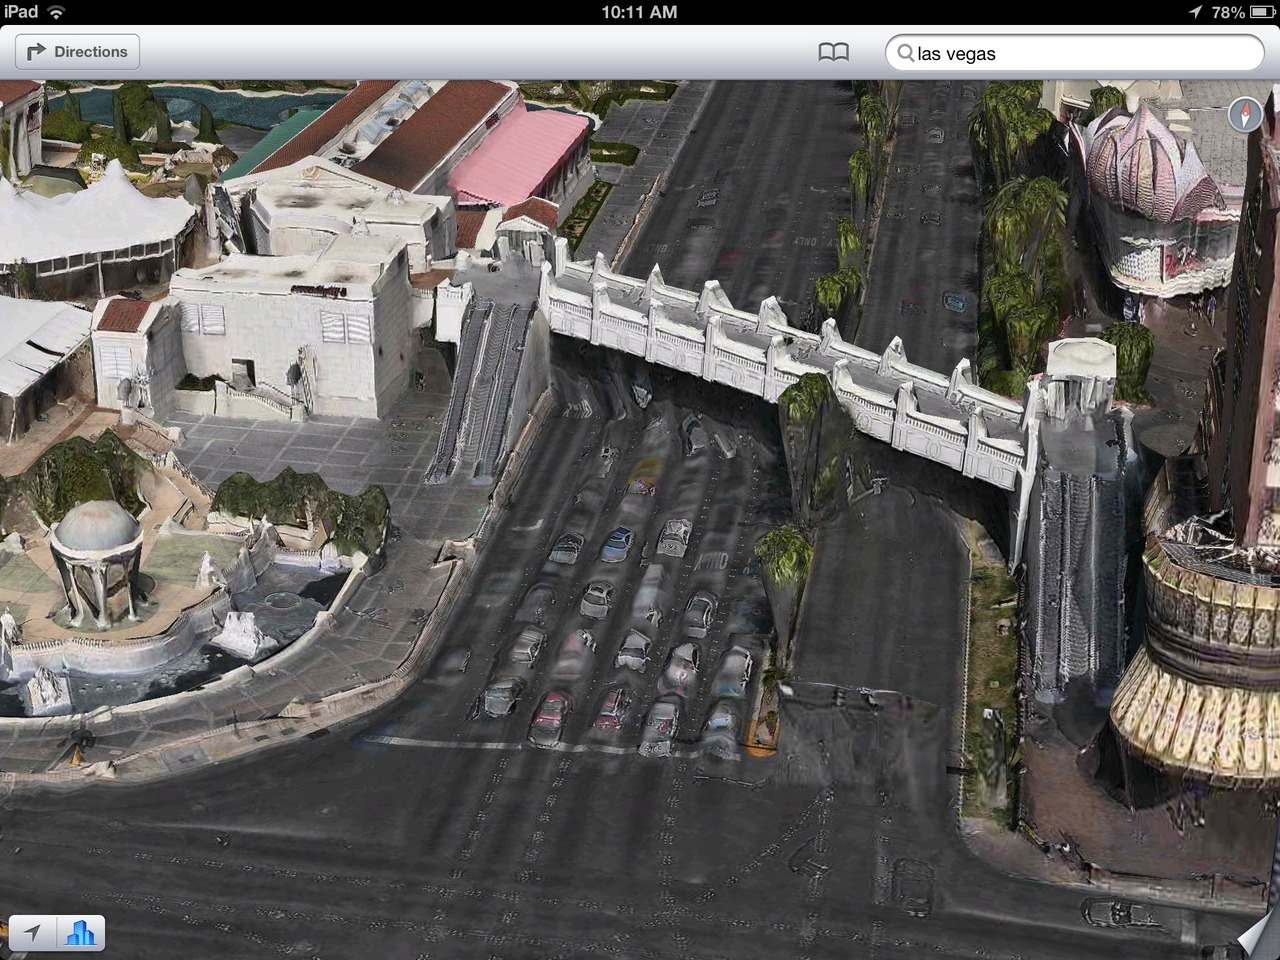 to:  The Amazing iOS 6 Maps: Las Vegas is melting.